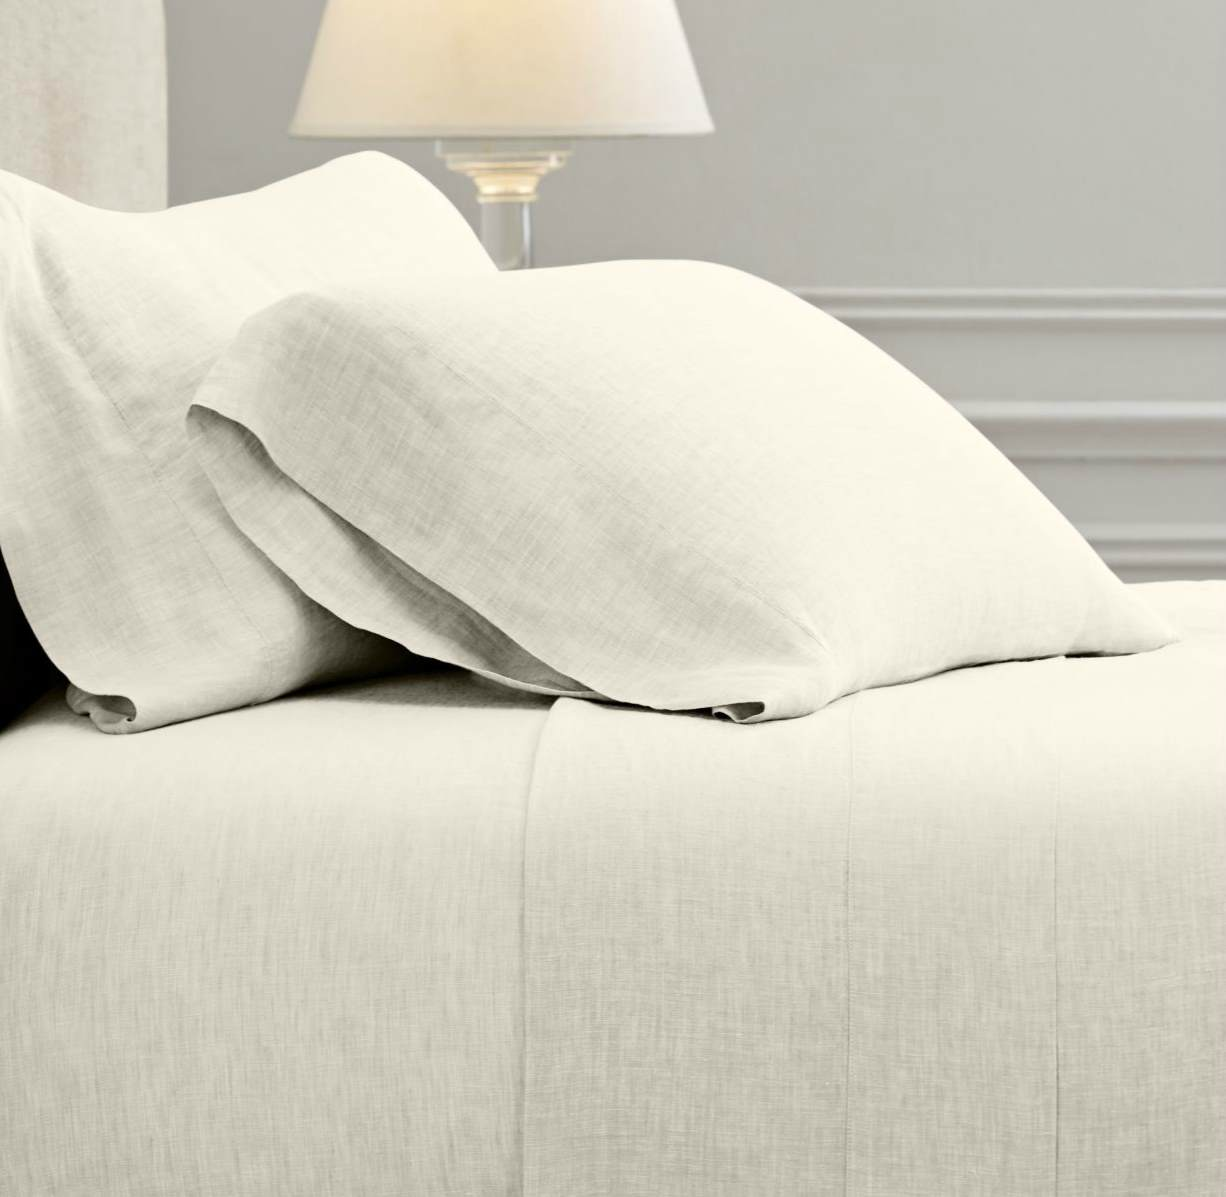 Linen bedding from Restoration Hardware